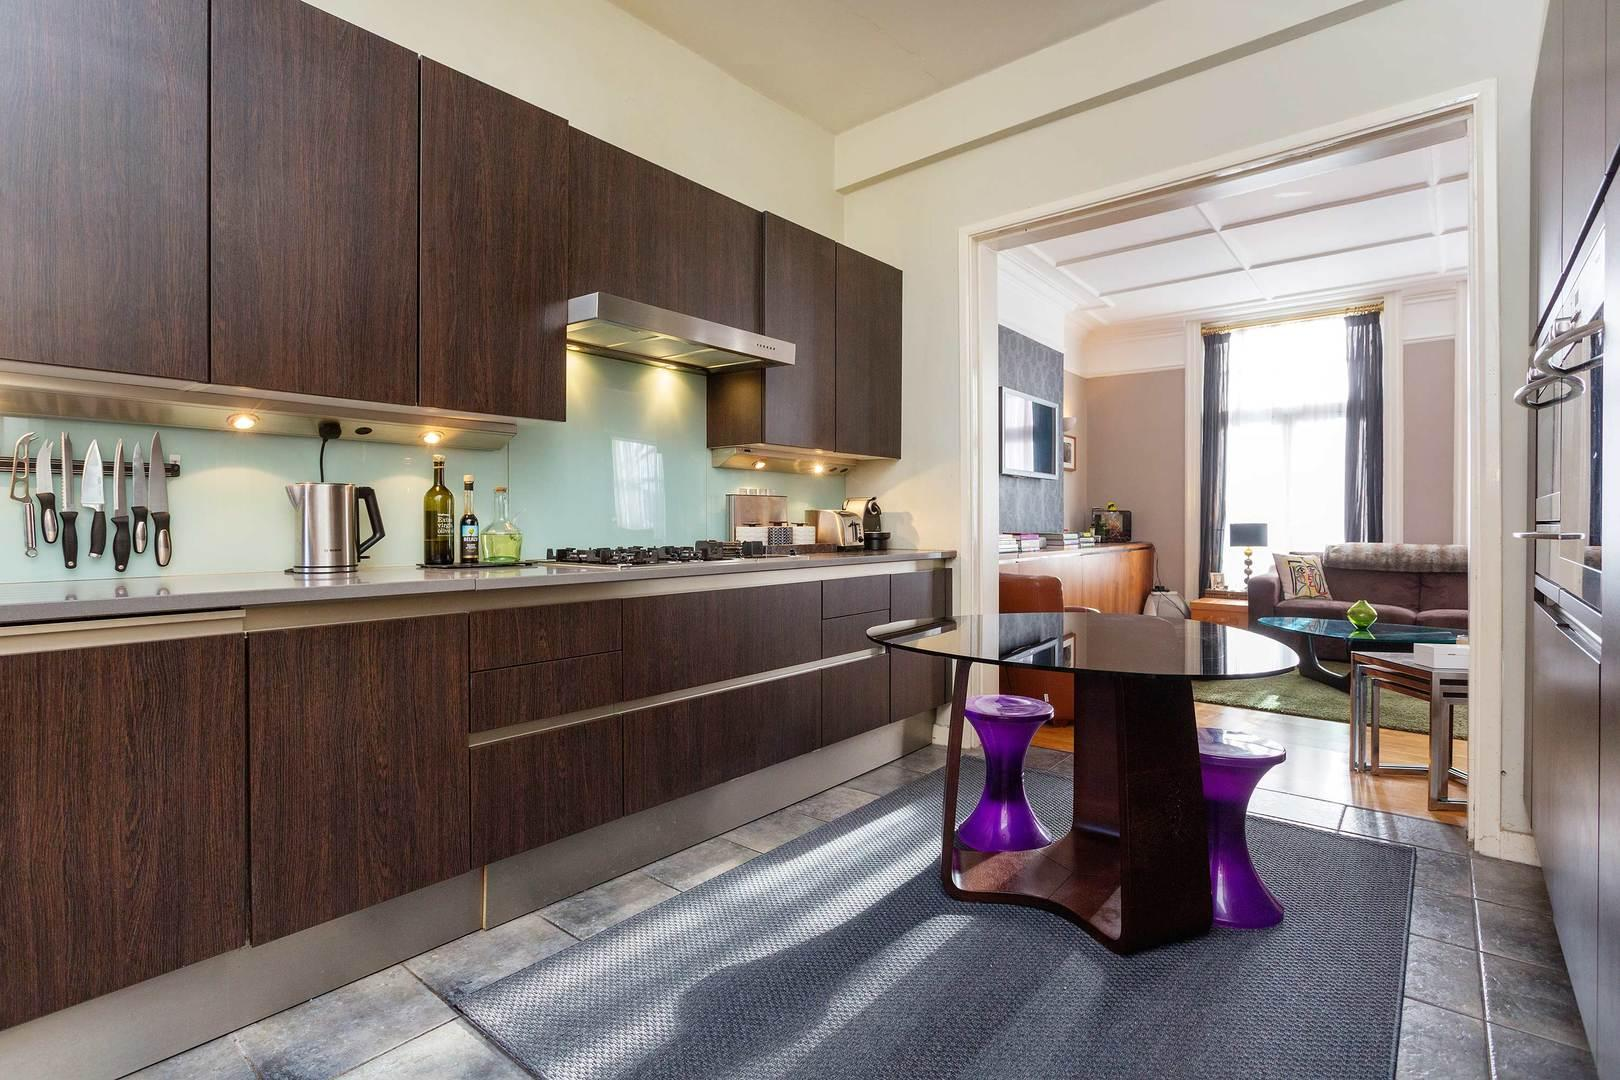 Property Image 1 - Sleek Apartment in Desirable West Hampstead Location